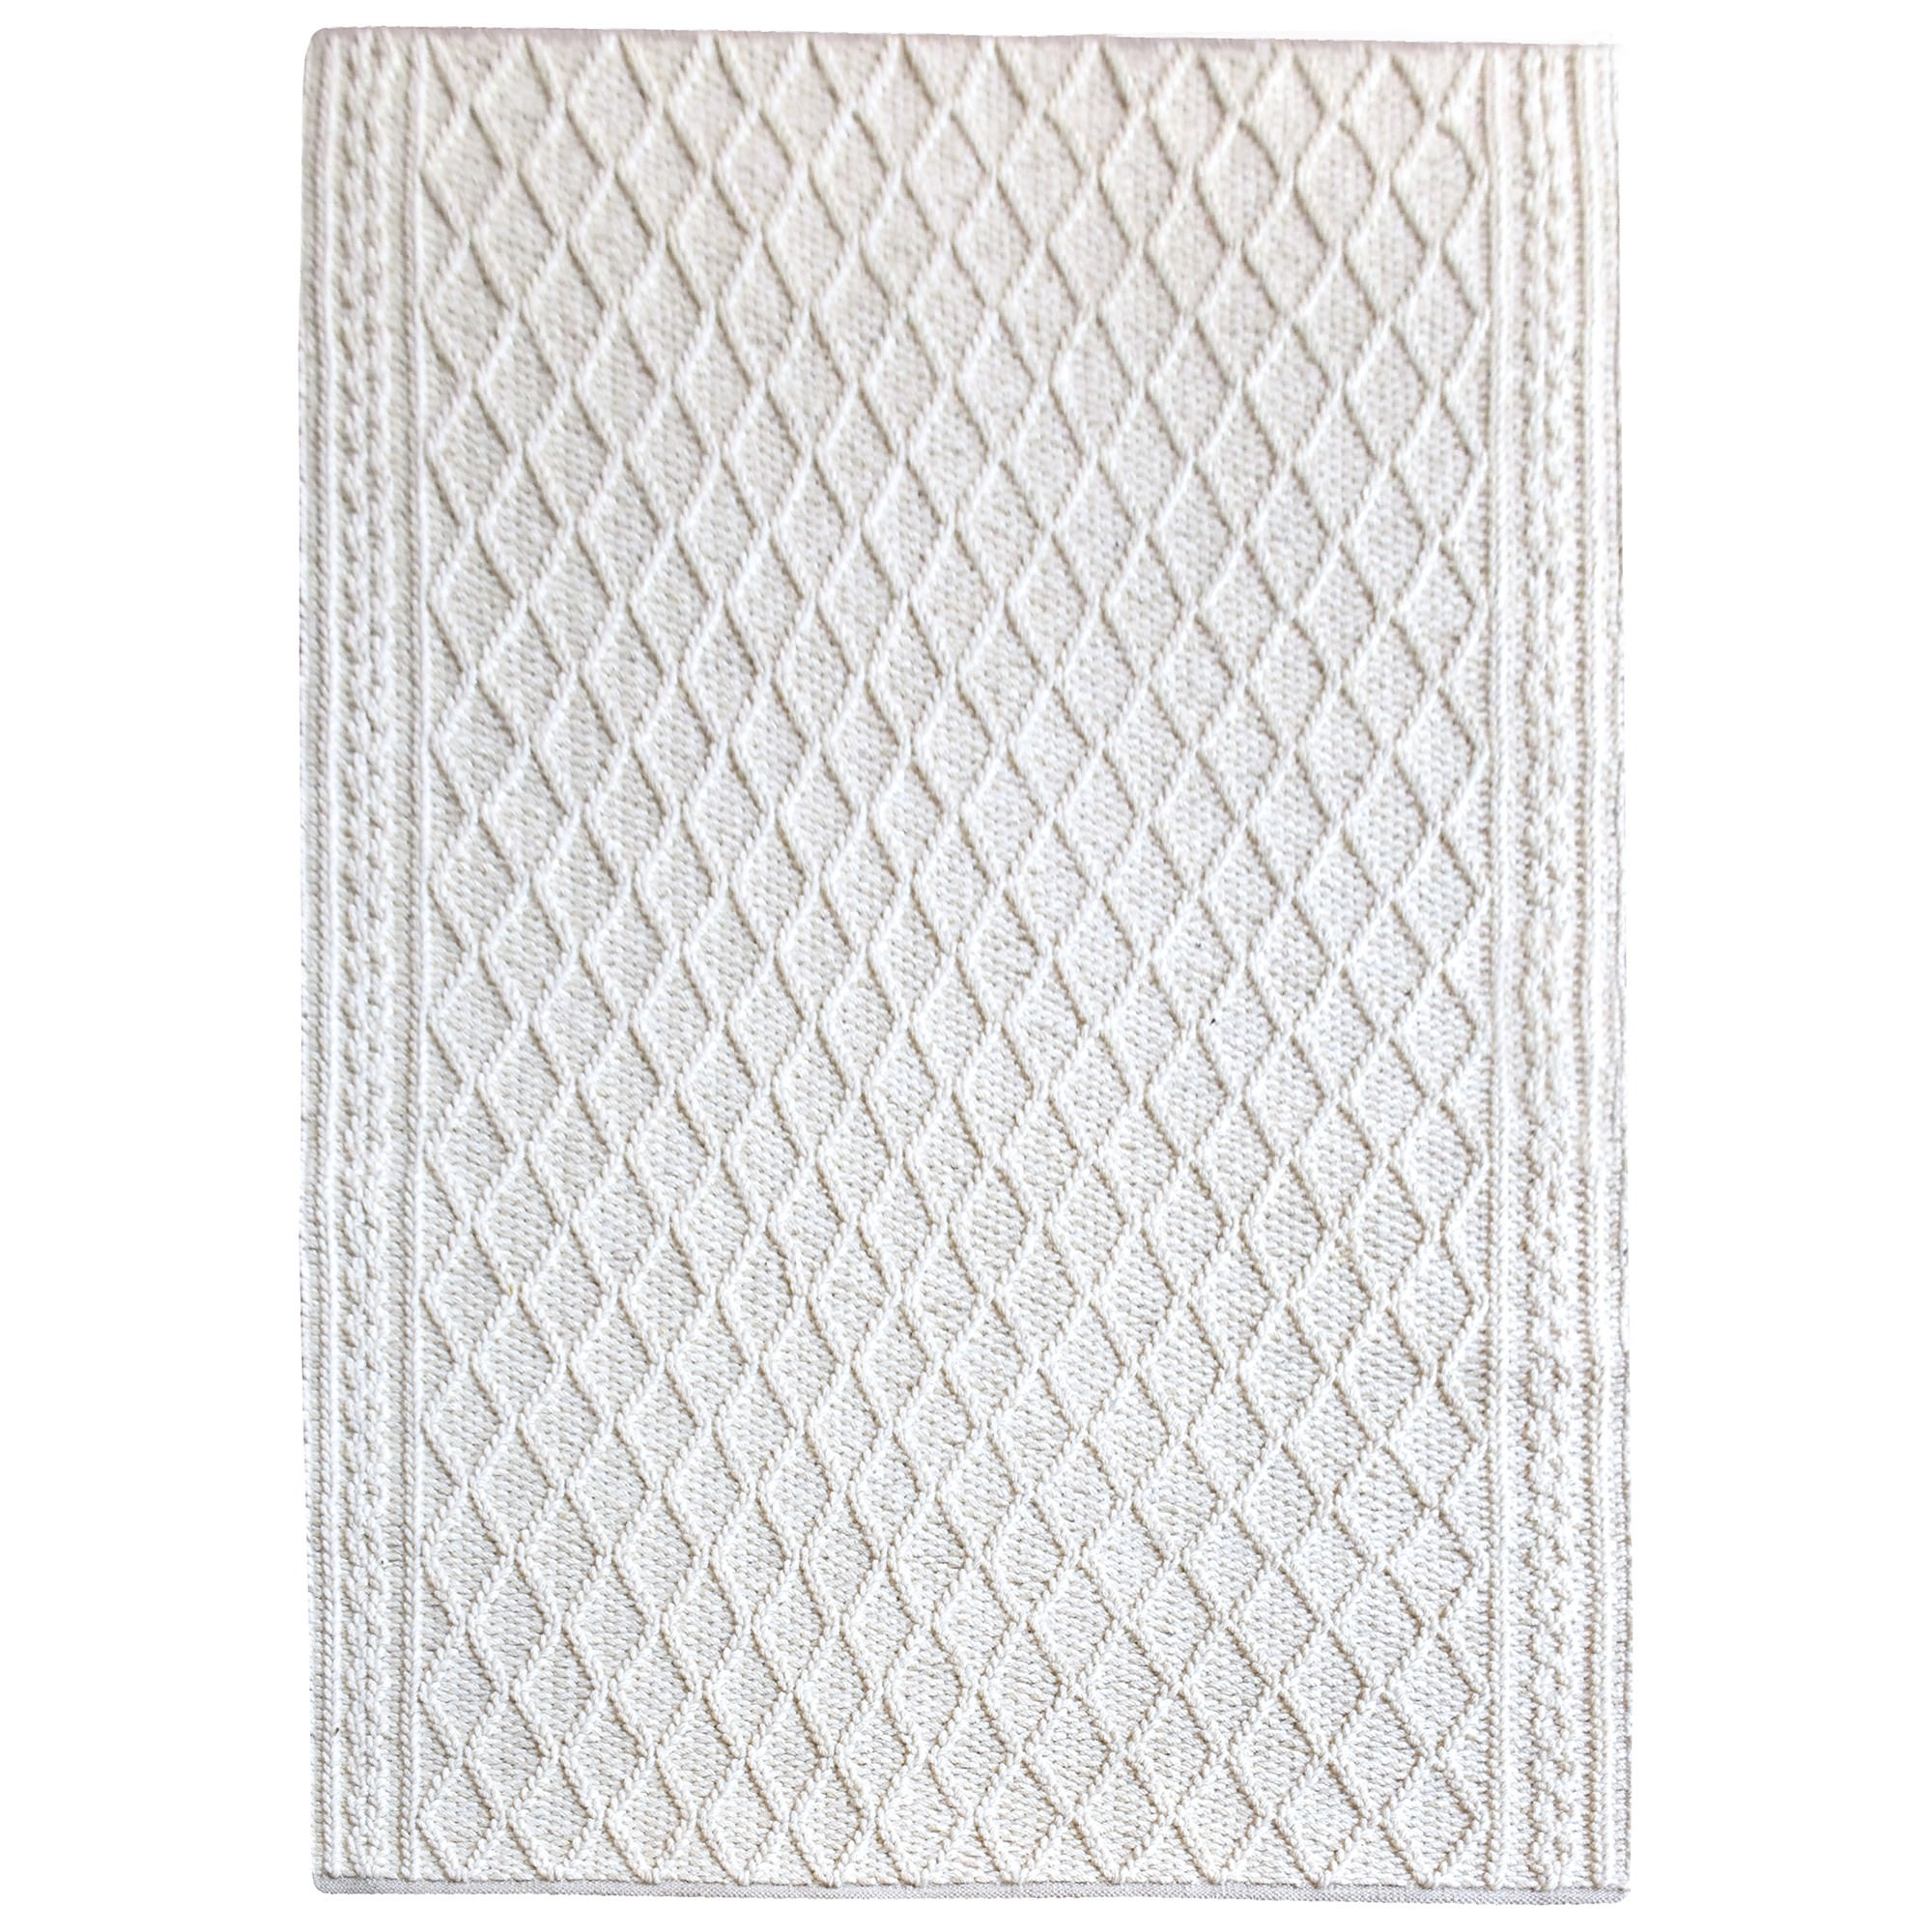 Evrita Hand Knitted Textured Wool Rug, 160x230cm